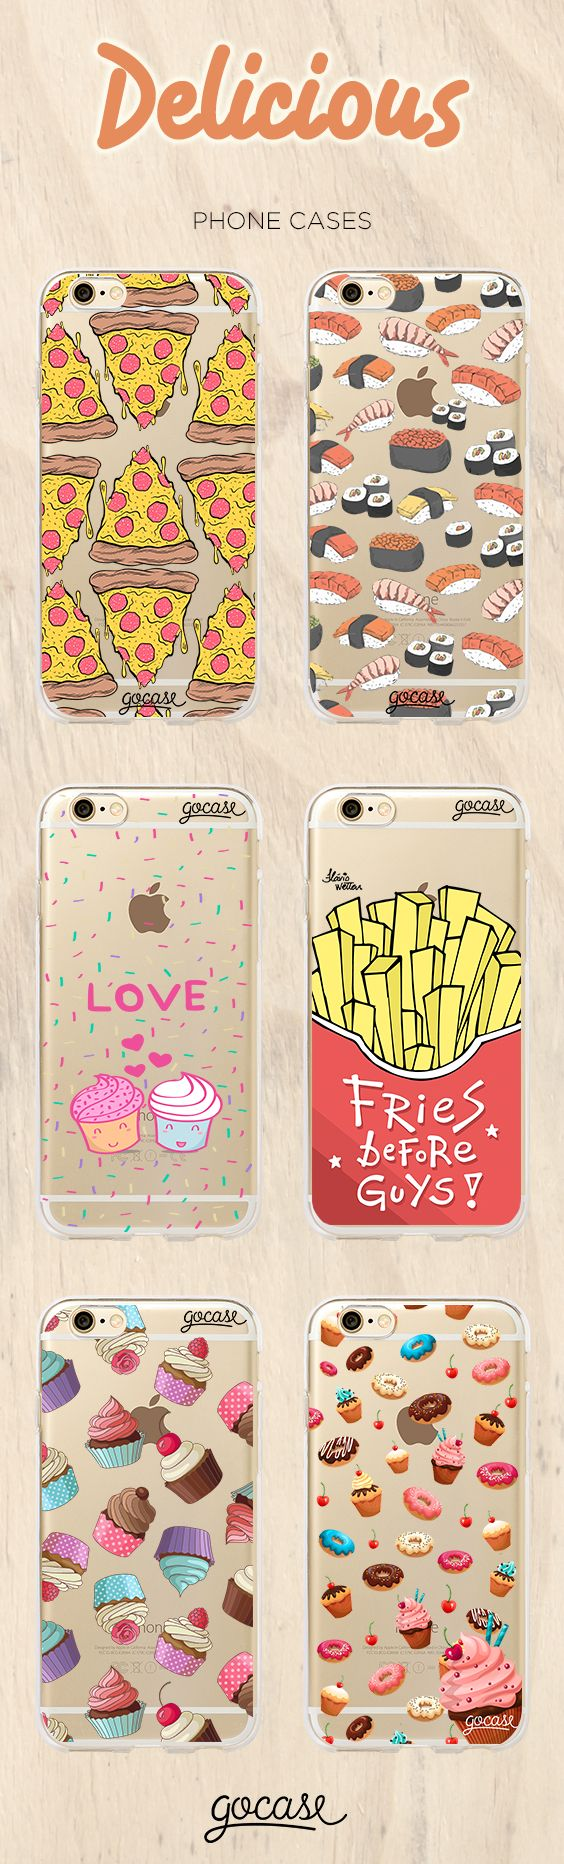 ♕pinterest/ francesca Cell Phones & Accessories - Cell Phone, Cases & Covers - http://amzn.to/2iNpCNS